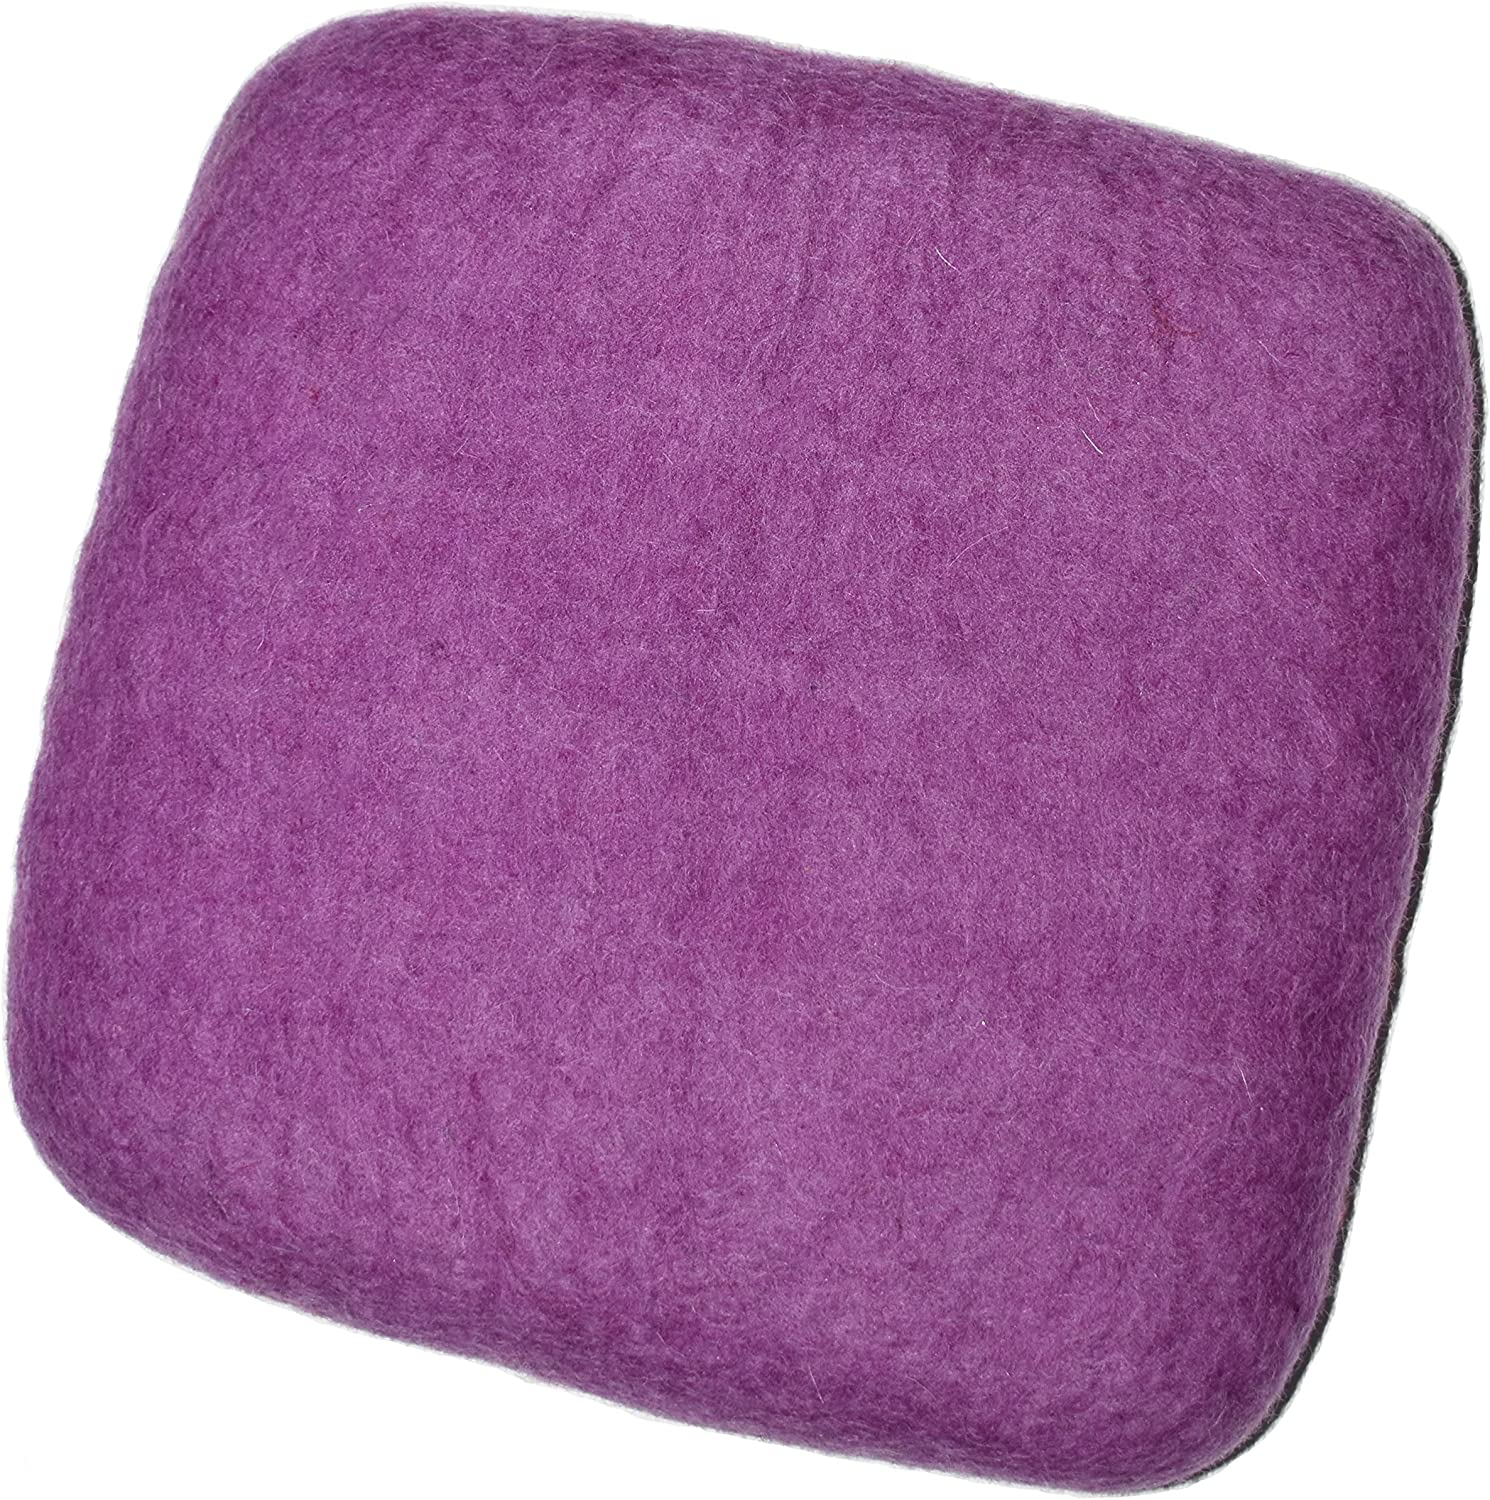 "100% Woolen Needle Fetling Mat | Eco-Friendly Natural Wool Needle Felting (9"" x 9"", Purple) A1uHVxQrhGL"